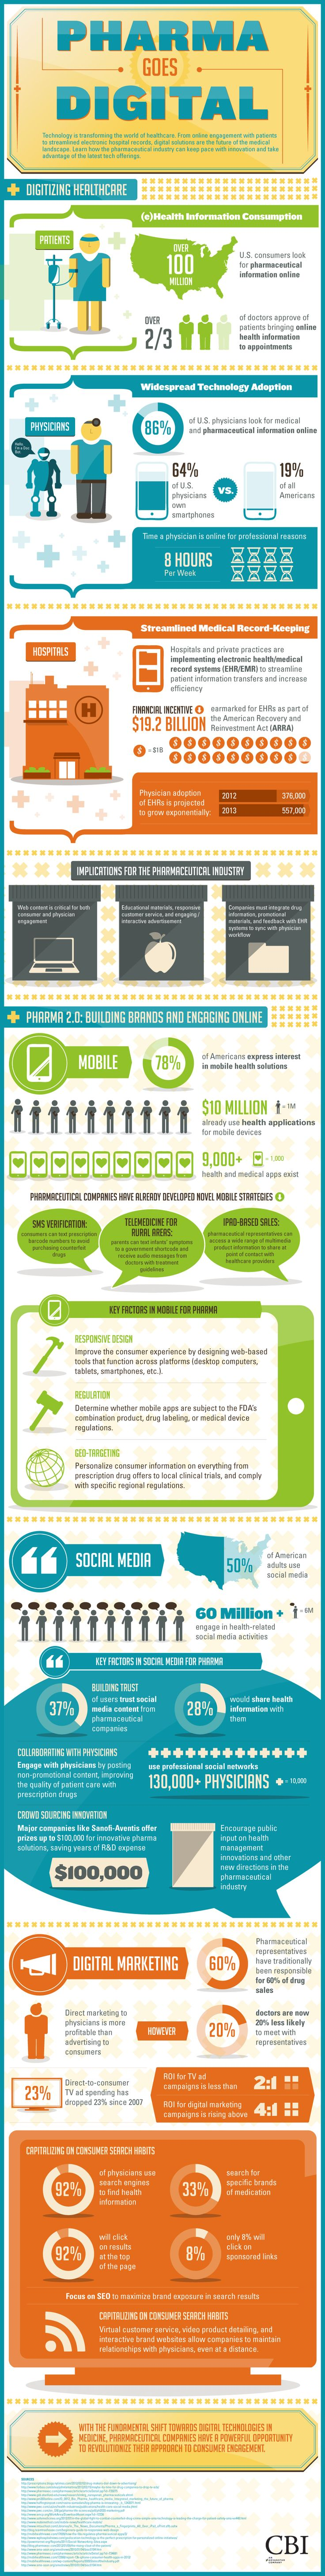 Social Media & Pharma - The Facts [Infographic]